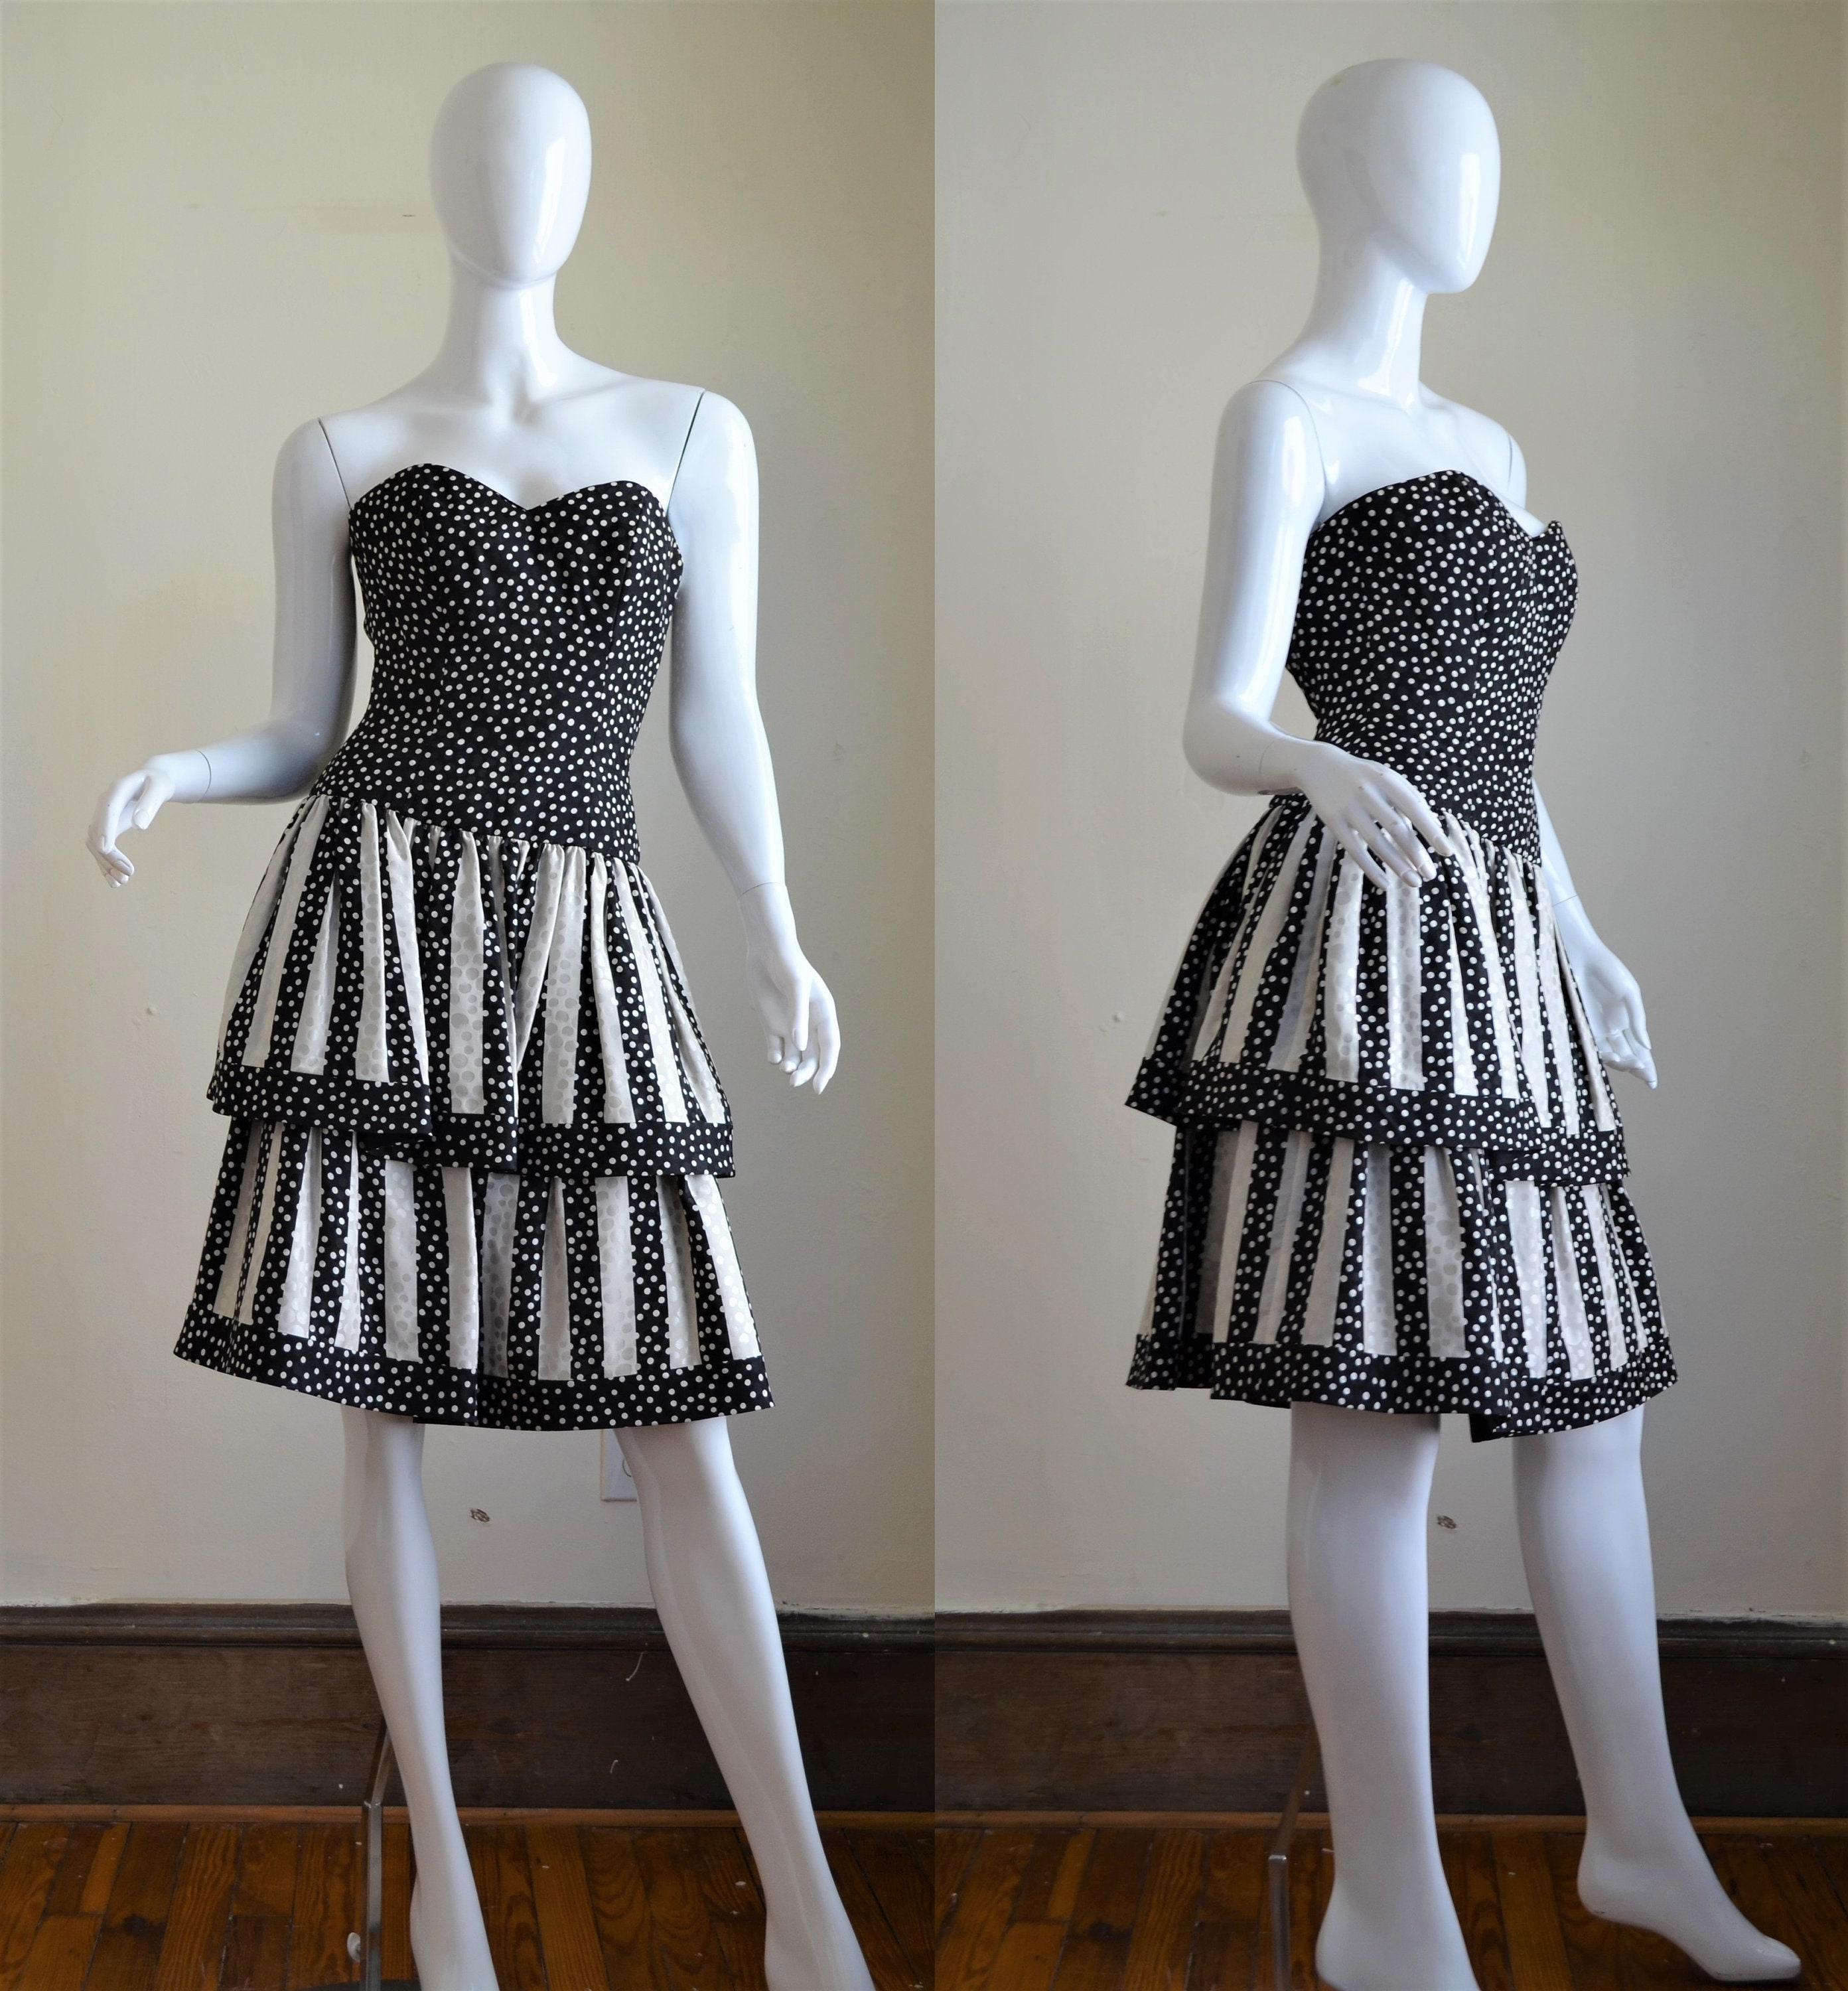 80s Dresses | Casual to Party Dresses 1980S Silk Black  White Polka Dot A J Bari Strapless Party Dress Bust 31.5 $0.00 AT vintagedancer.com